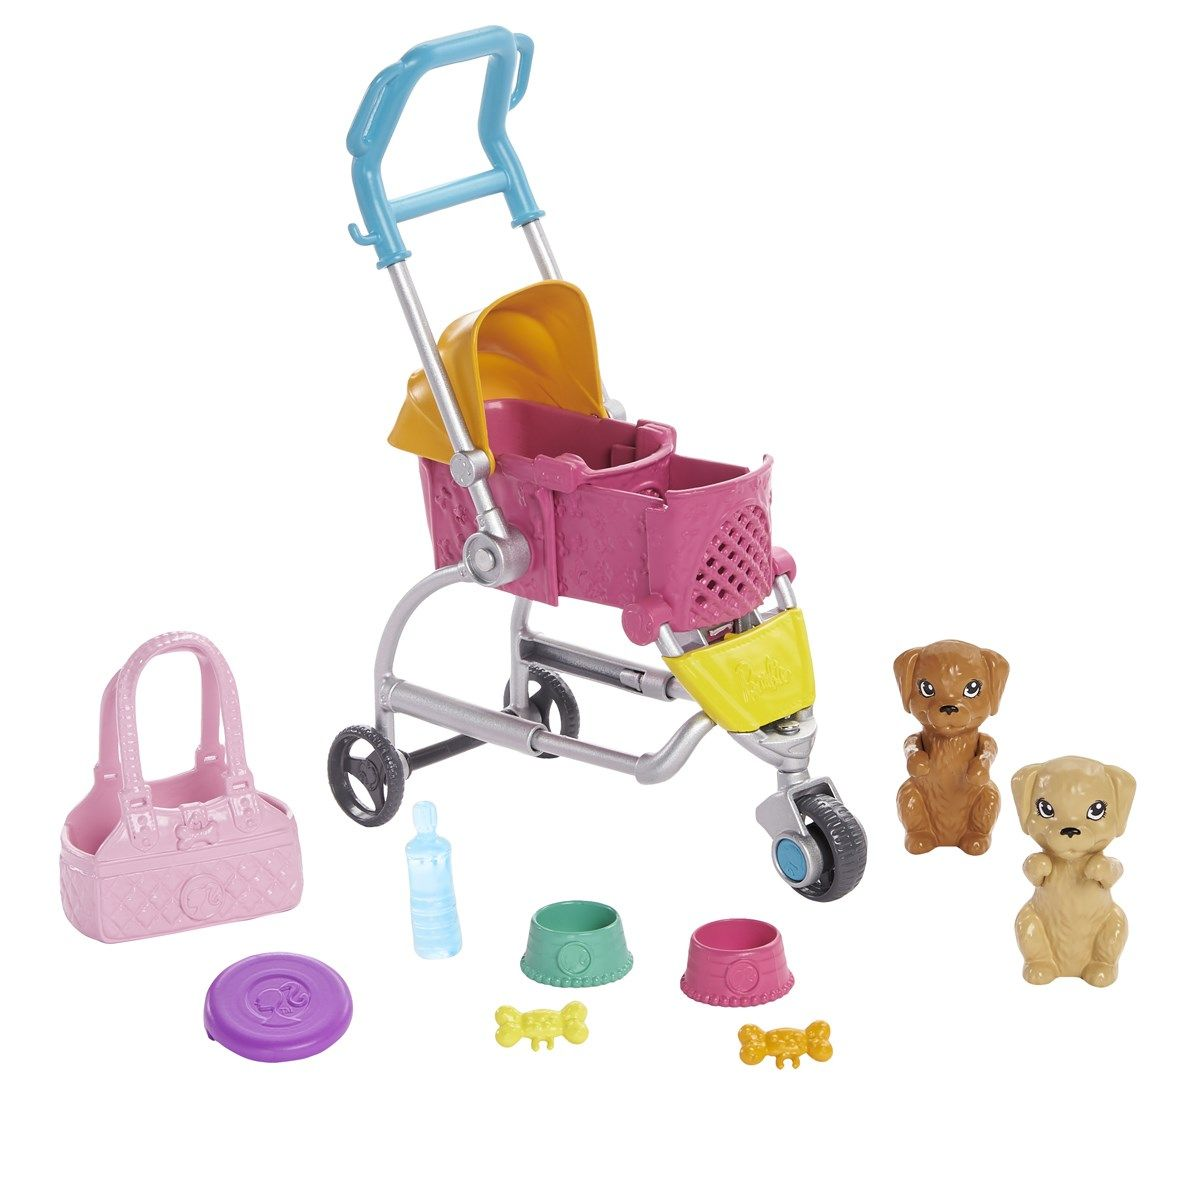 Barbie, Stroll & Play Pups Doll and Accessories